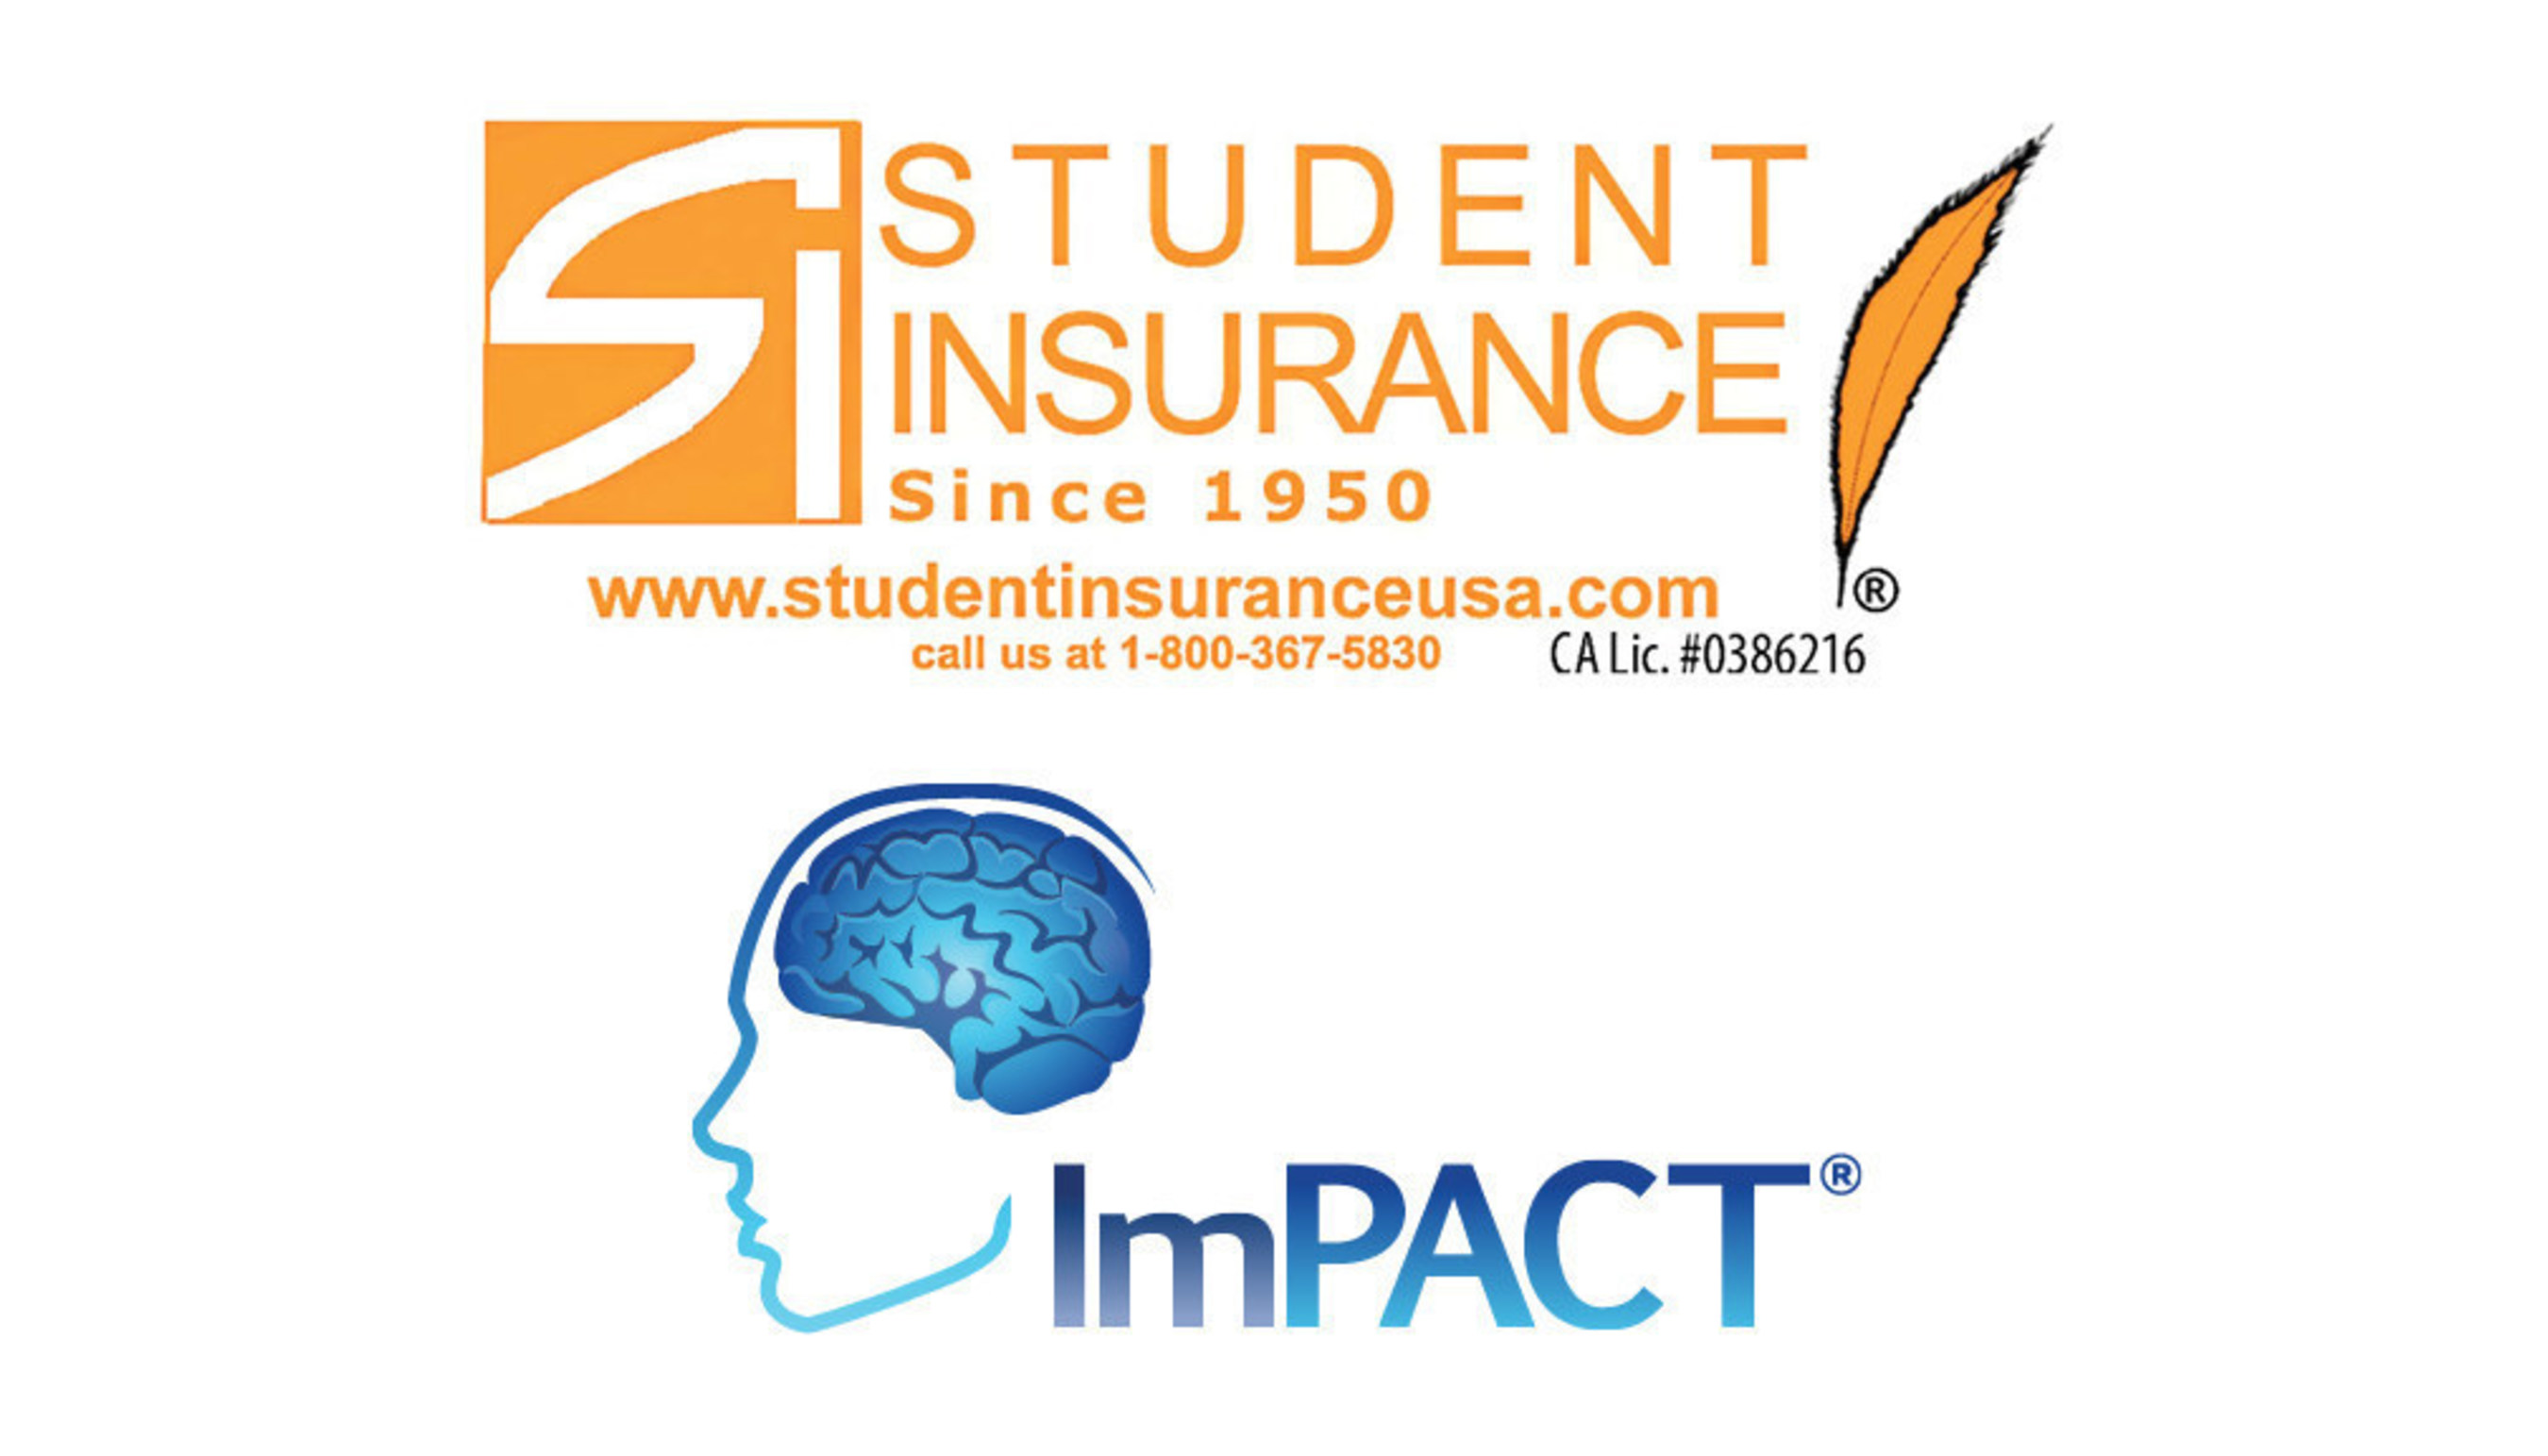 Nearly 100 California community colleges will have access to specially priced, state-of-the-art concussion baseline testing to cover their athletes as part of a new partnership between Student Insurance and ImPACT Applications.